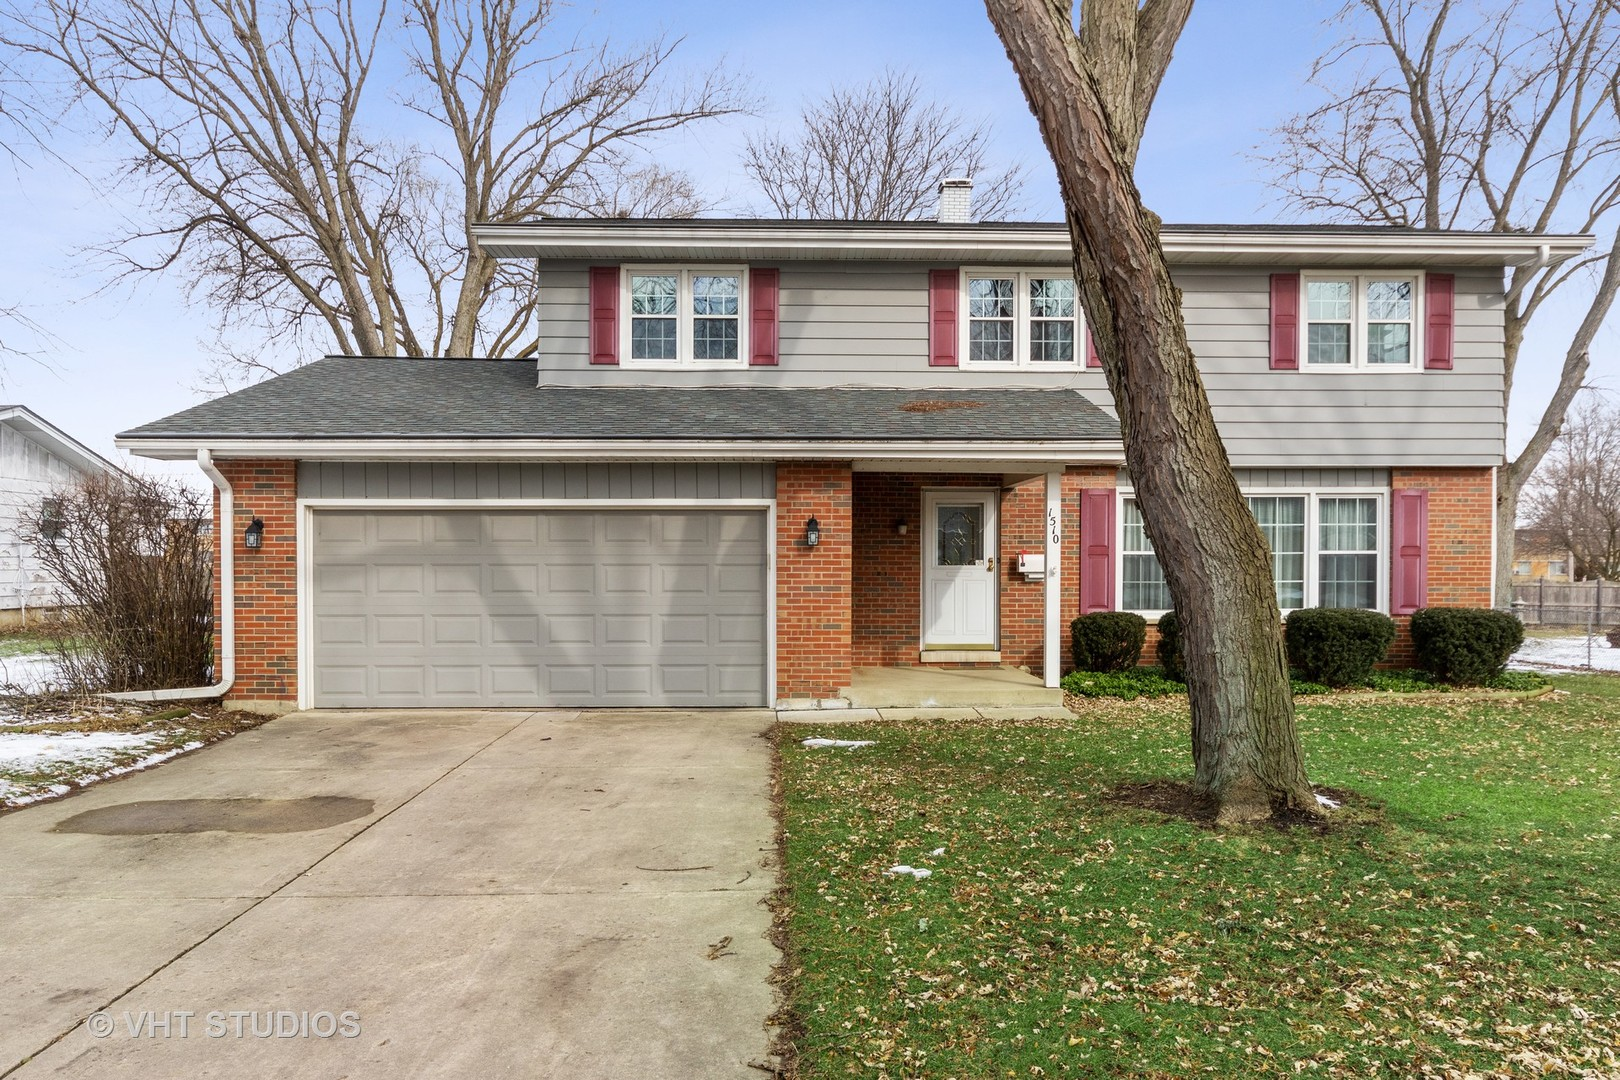 Photo for 1510 Avalon Court, St. Charles, IL 60174 (MLS # 10627261)